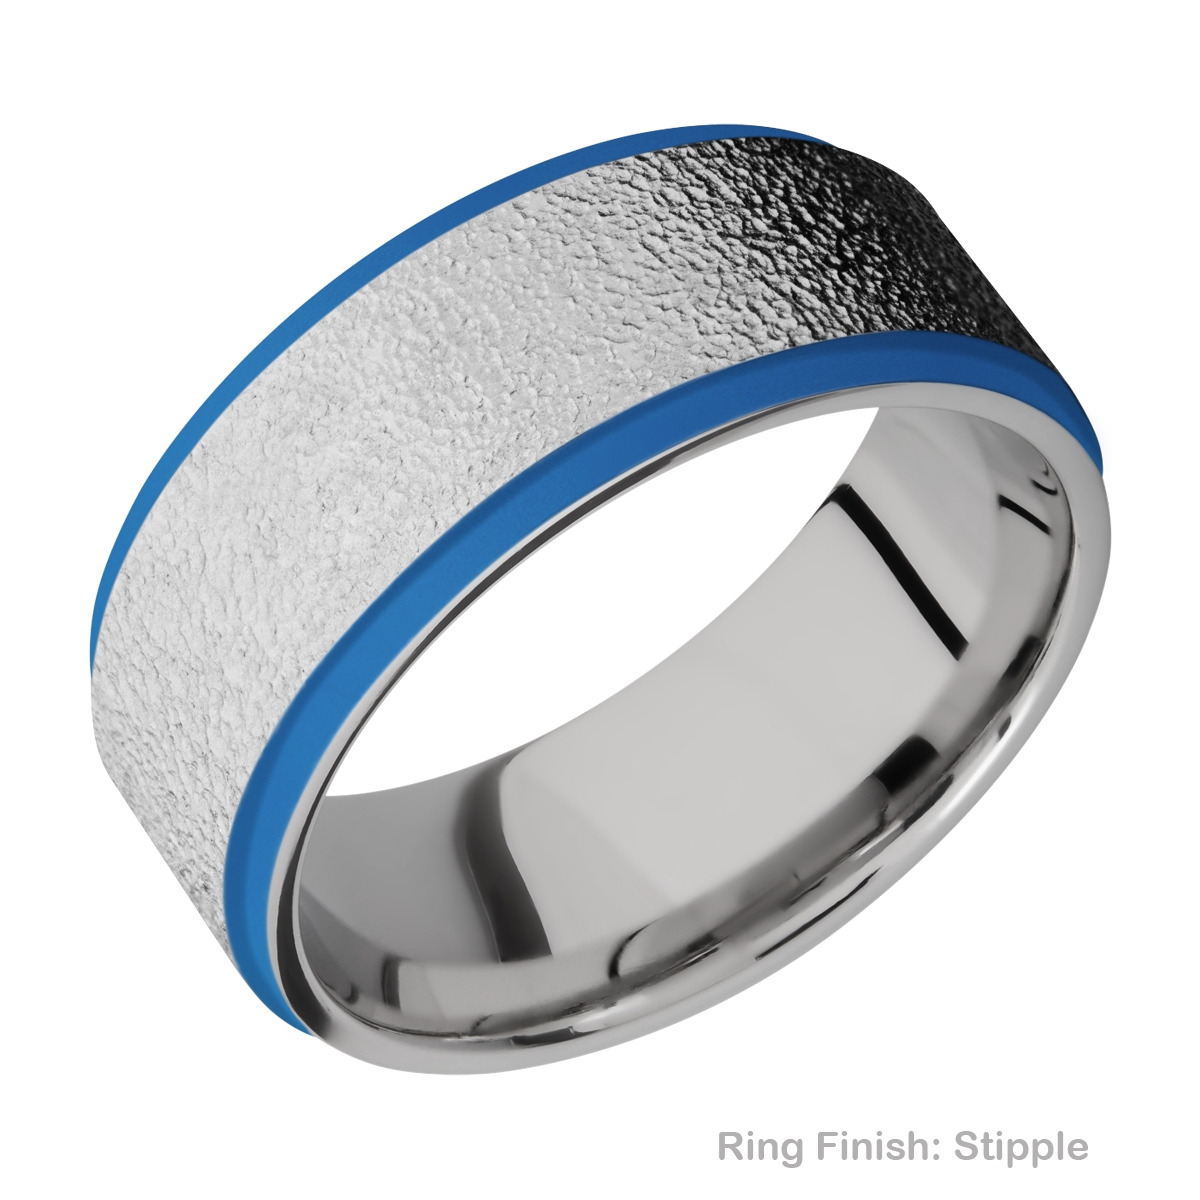 Lashbrook CC10FGE21EDGE/A/CERAKOTE Cobalt Chrome Wedding Ring or Band Alternative View 15